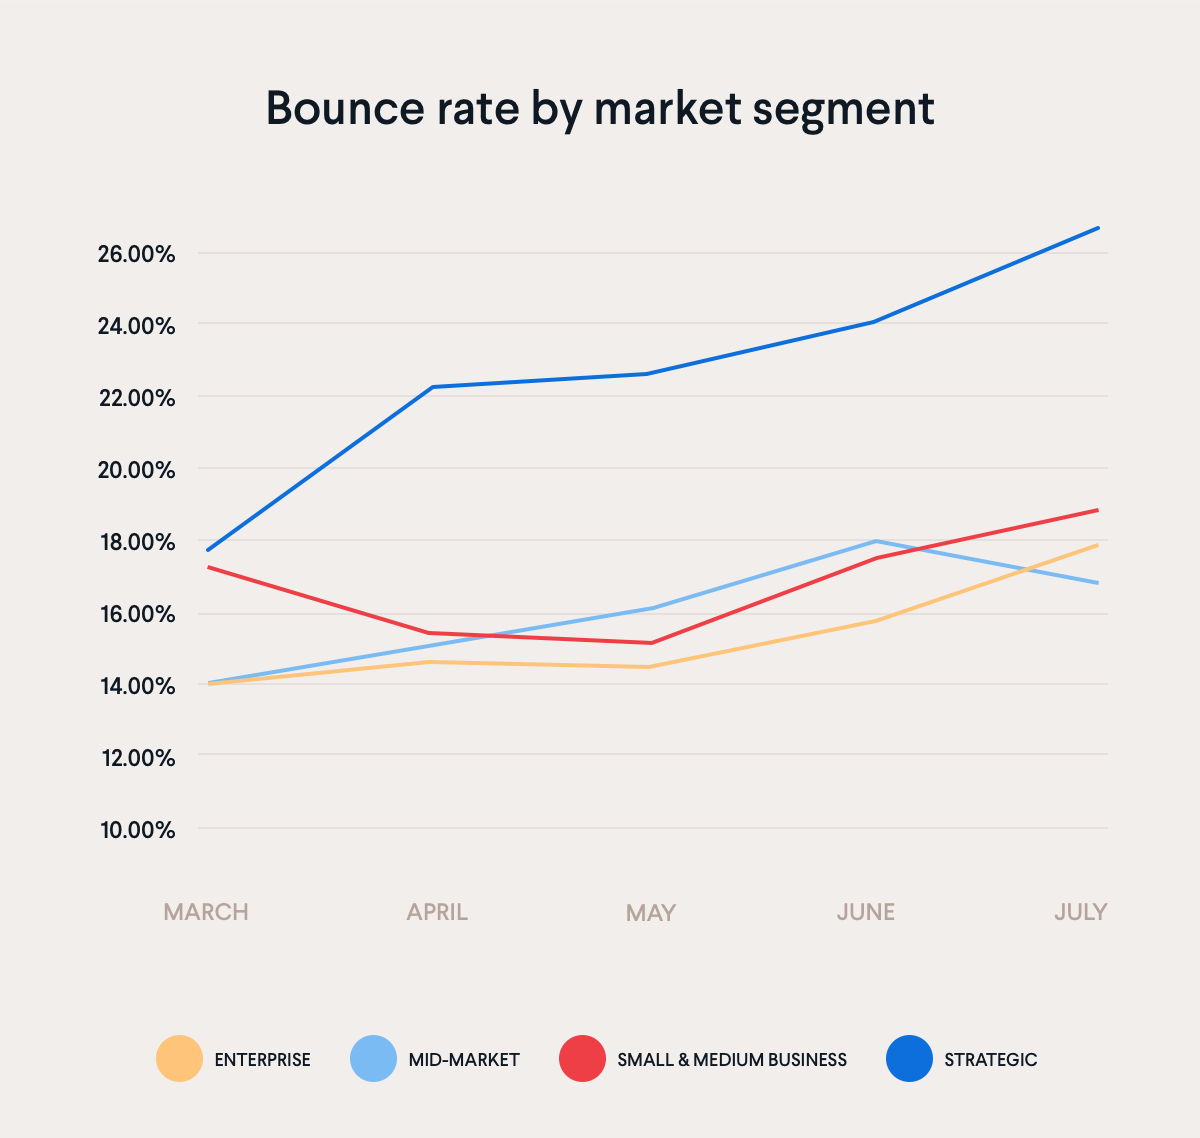 Bounce rate by market segment